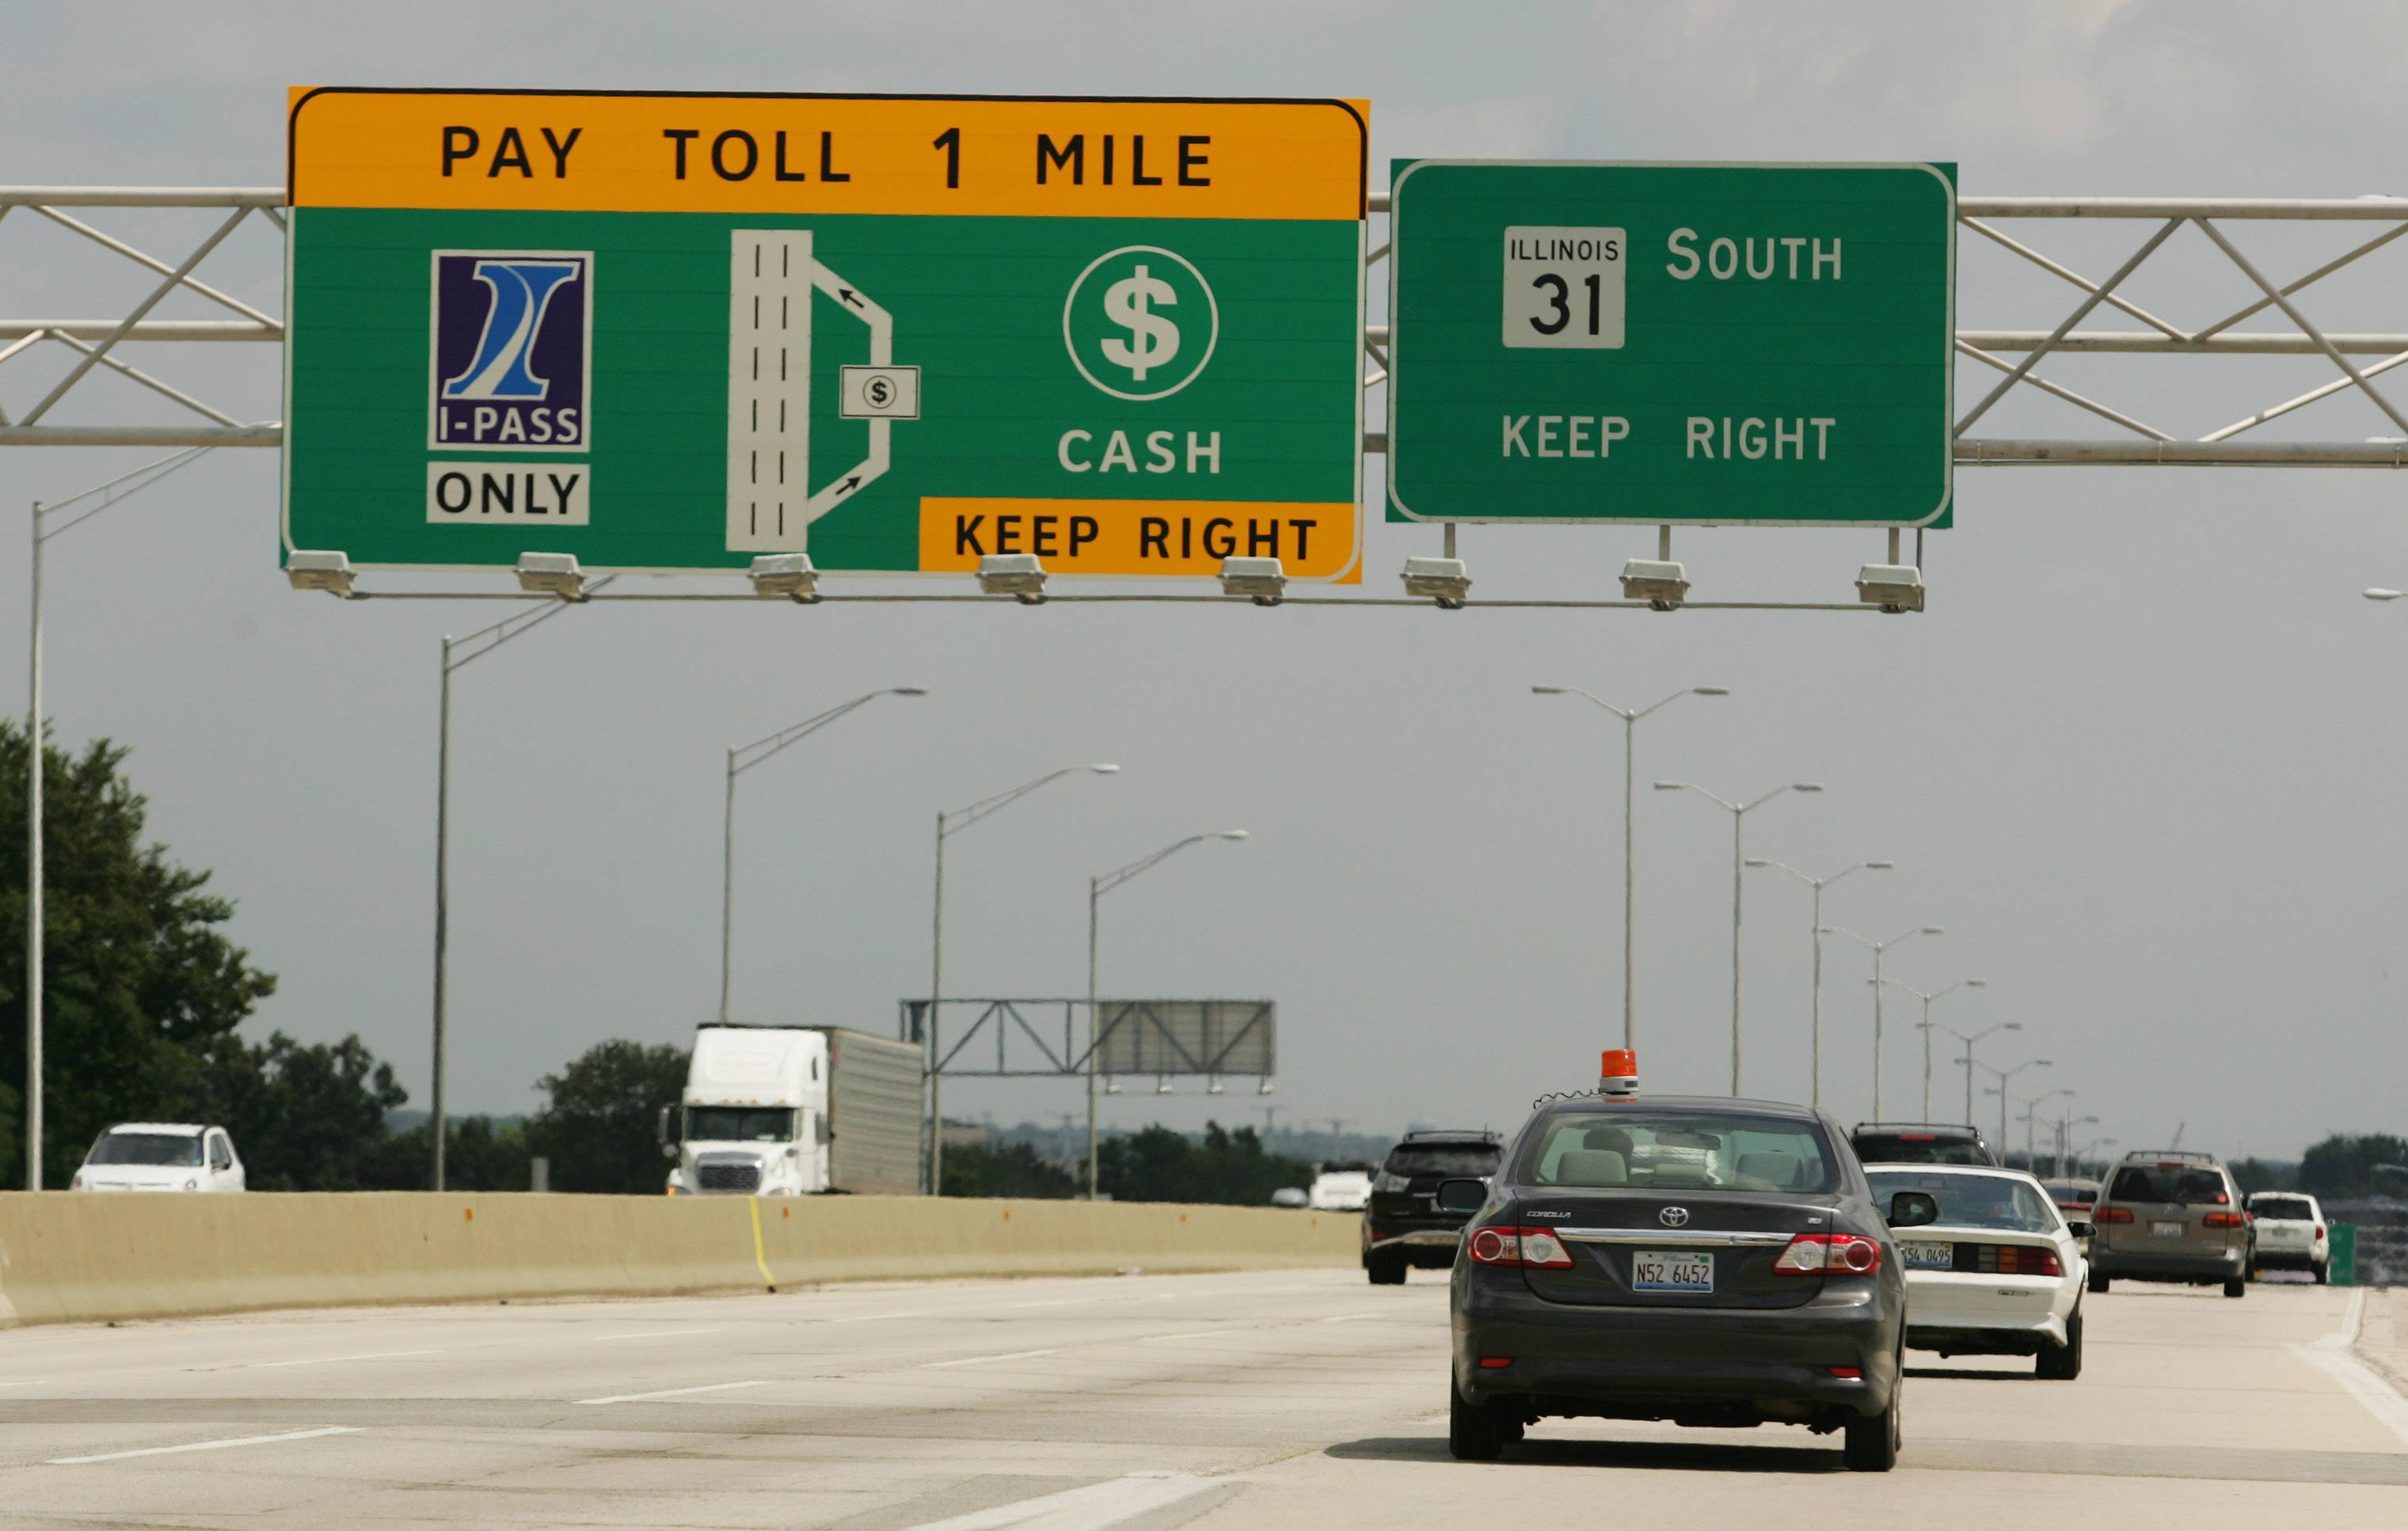 Missed-tolls grace period extended due to computer glitches